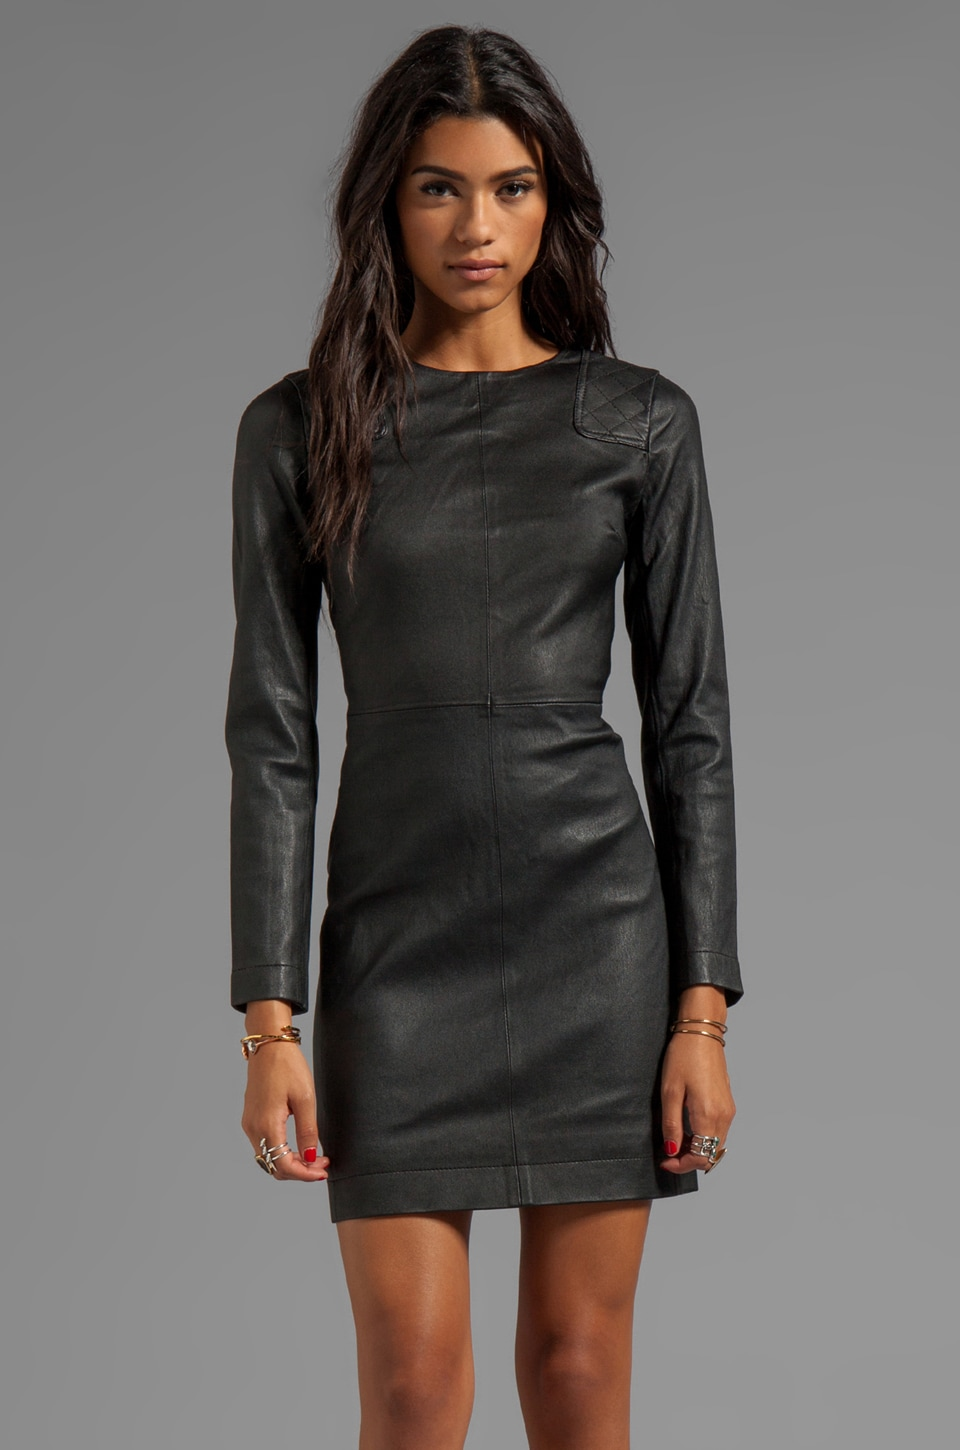 Marc by Marc Jacobs Lena Leather Dress in Black